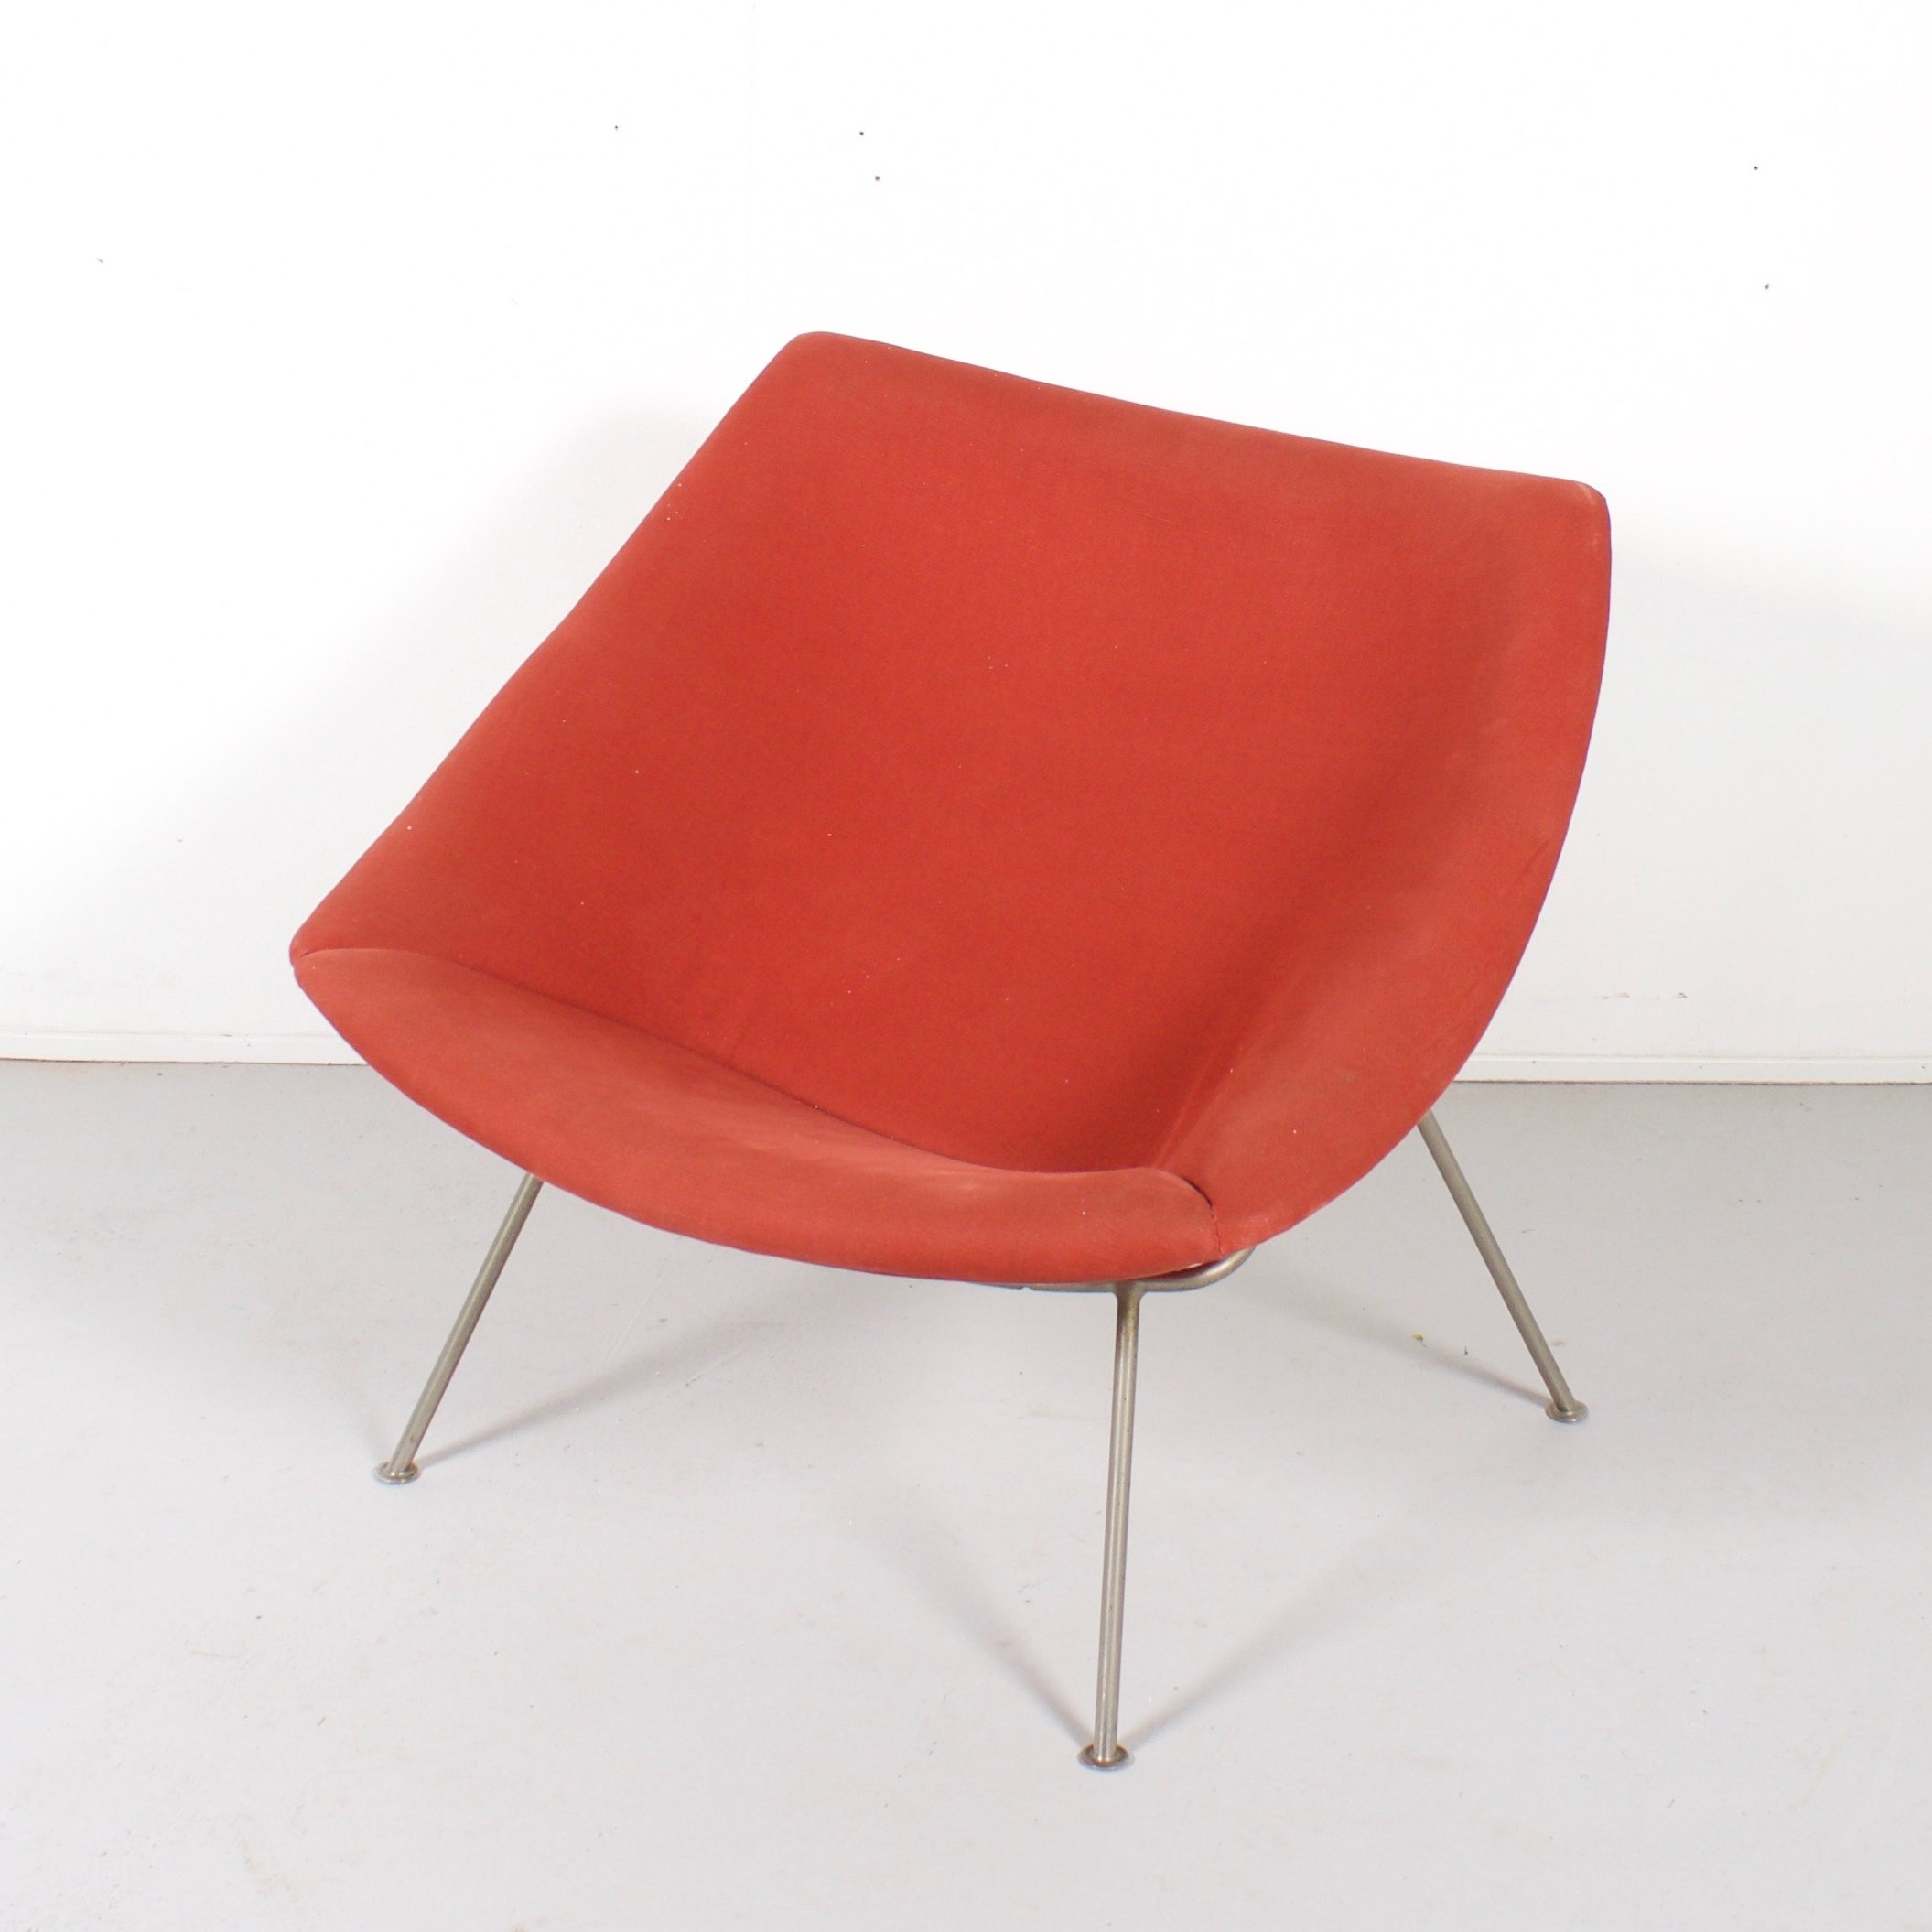 Early Artifort Oyster Chair by Pierre Paulin  sc 1 st  VNTG & Early Artifort Oyster Chair by Pierre Paulin | #78667